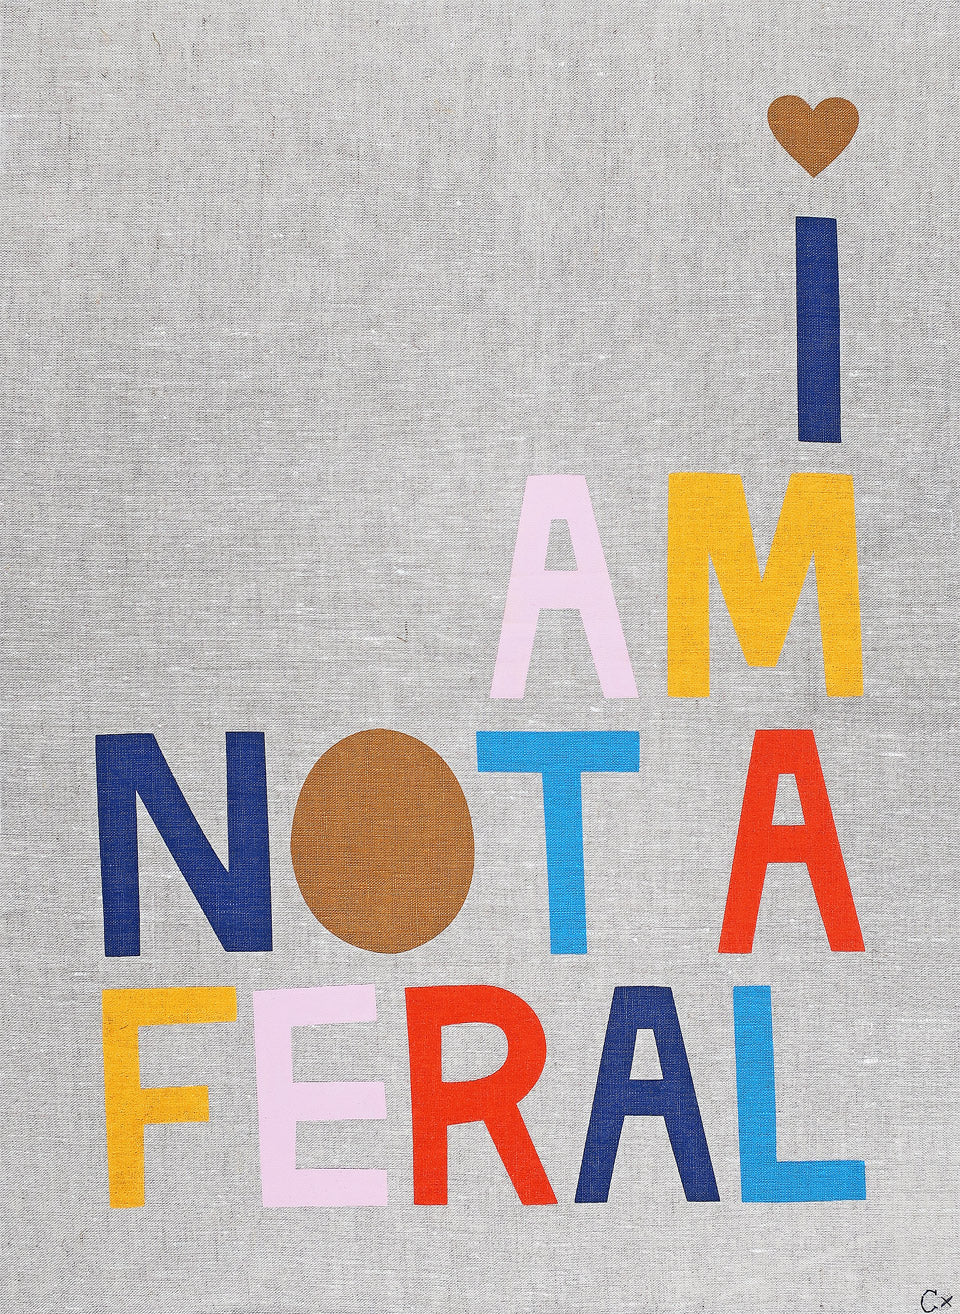 I AM NOT A FERAL ART TEATOWEL